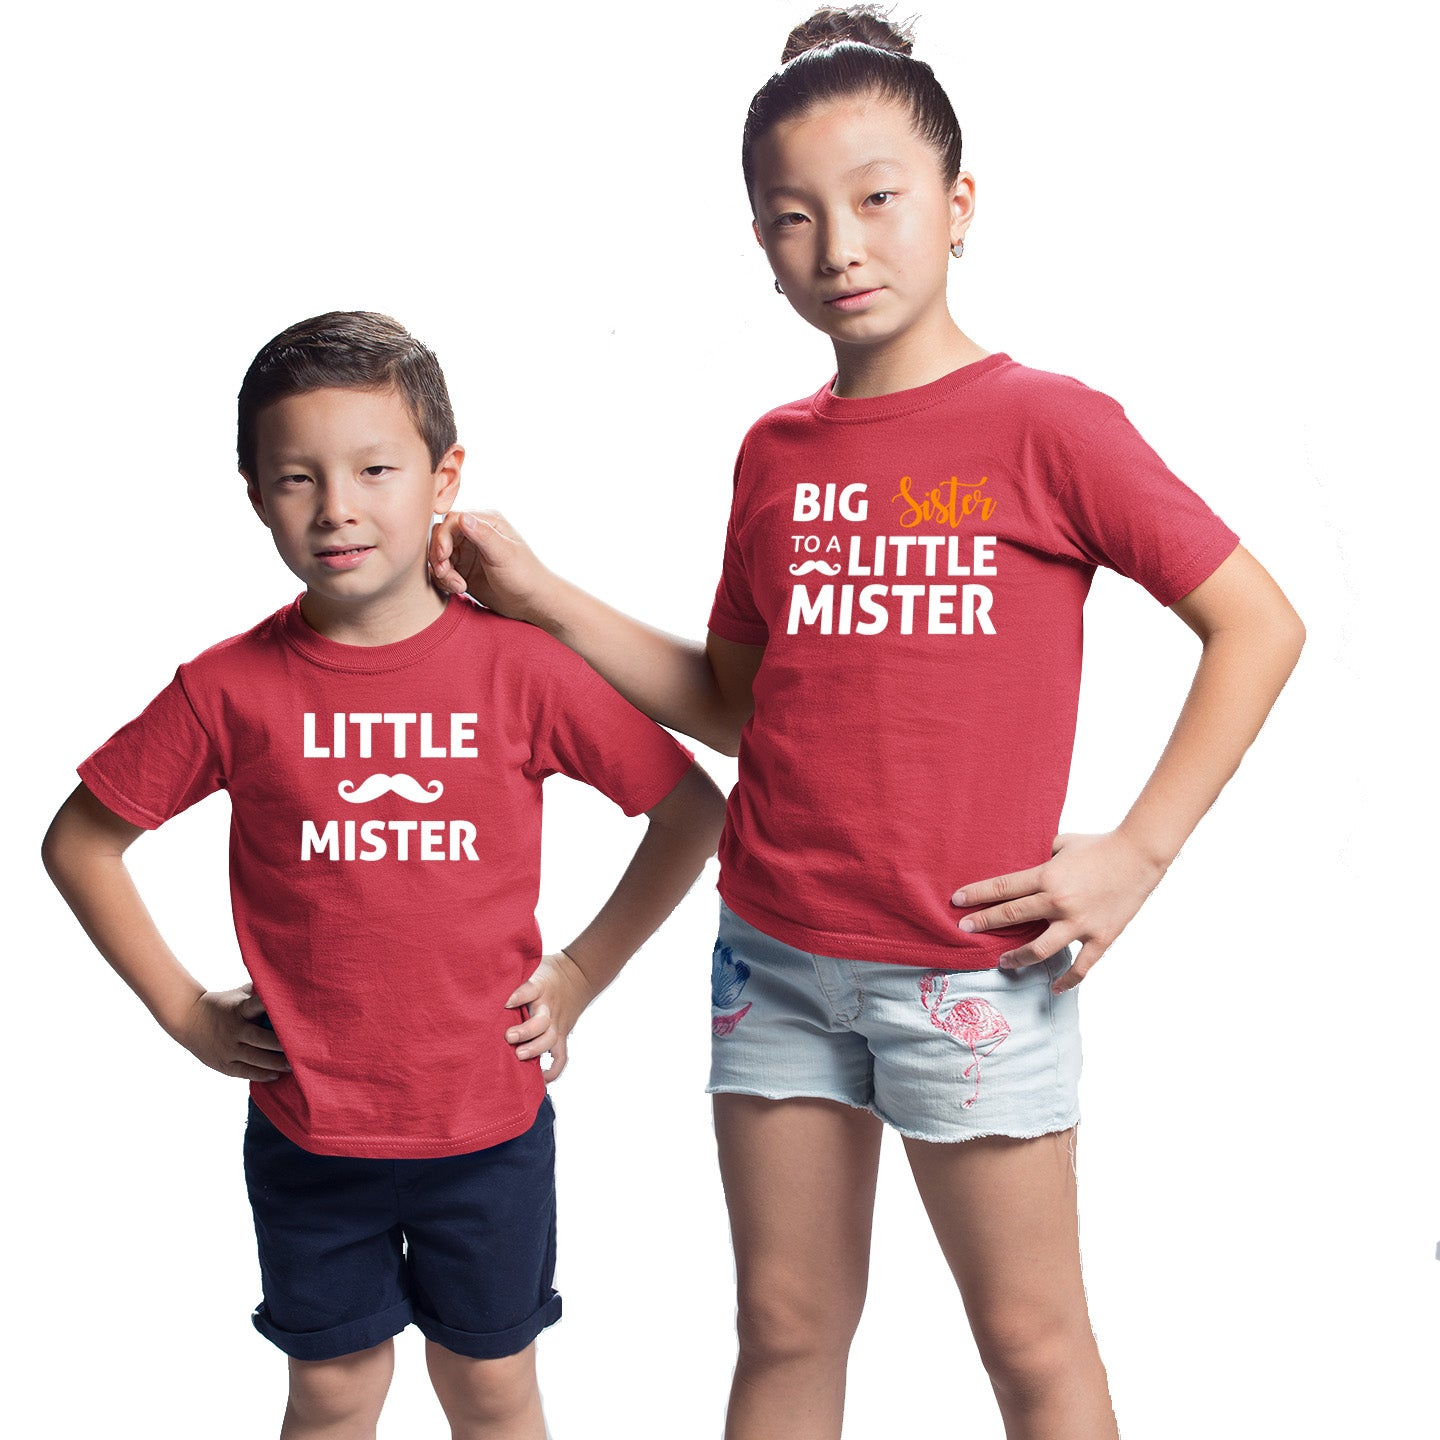 Sprinklecart Little Mister Big Sister to A Little Mister Cotton T Shirt Combo for Kids (Red)